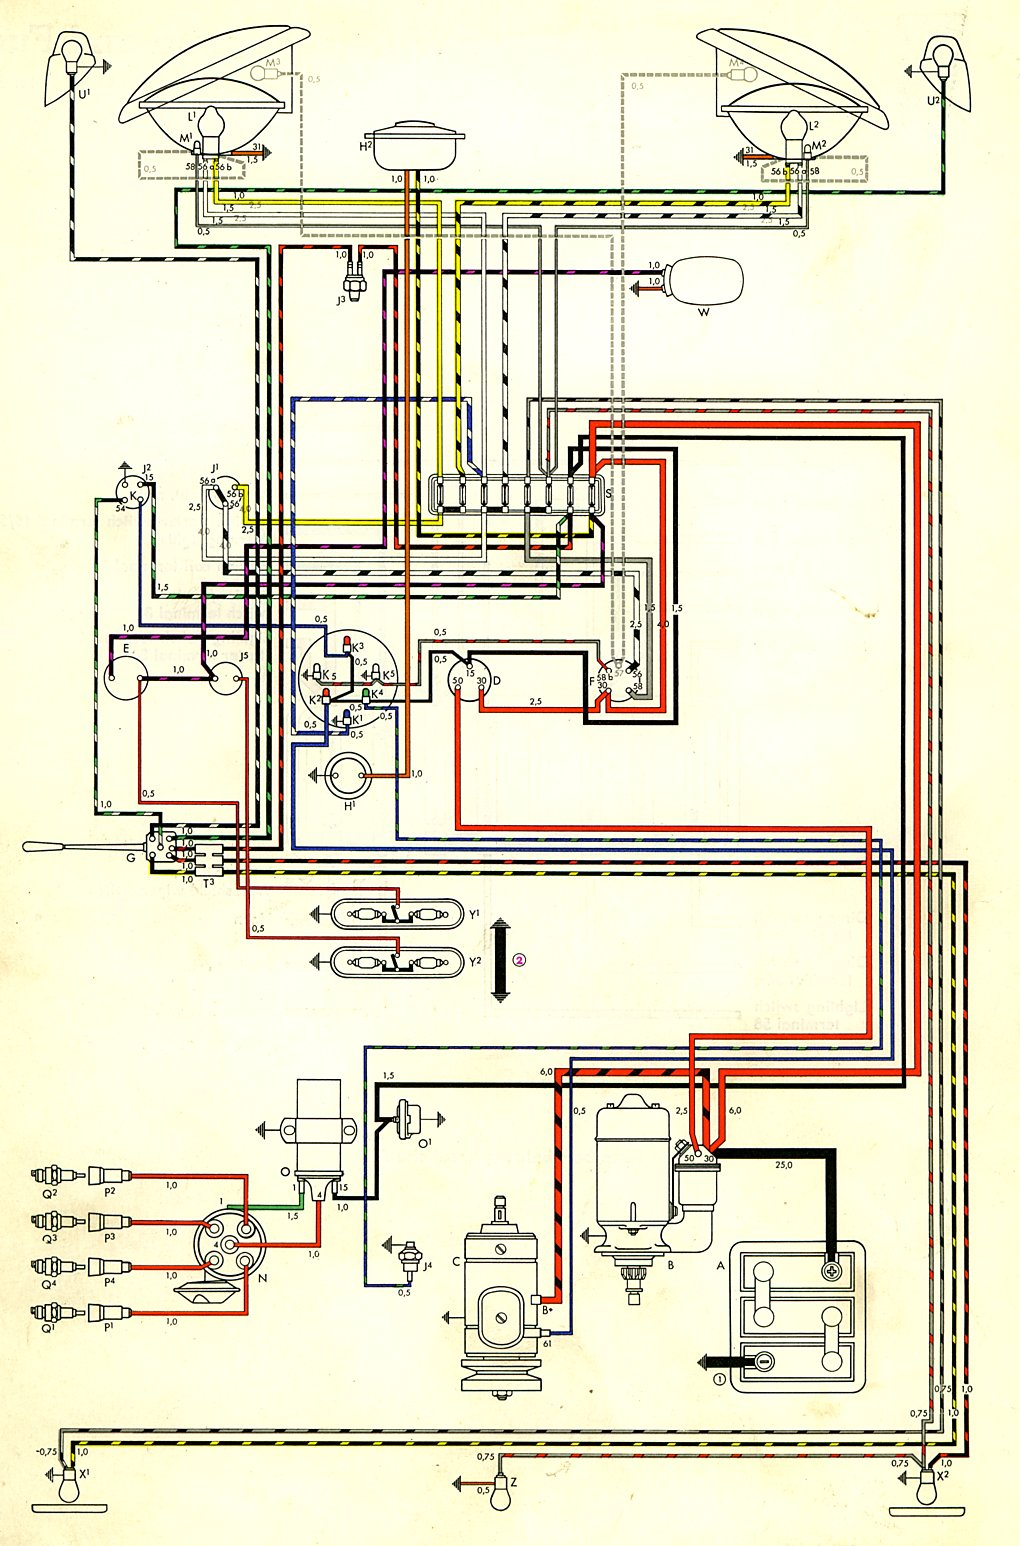 hight resolution of 1971 chevy truck ignition wiring diagram starting know about rh prezzy co 1971 ford f100 ignition